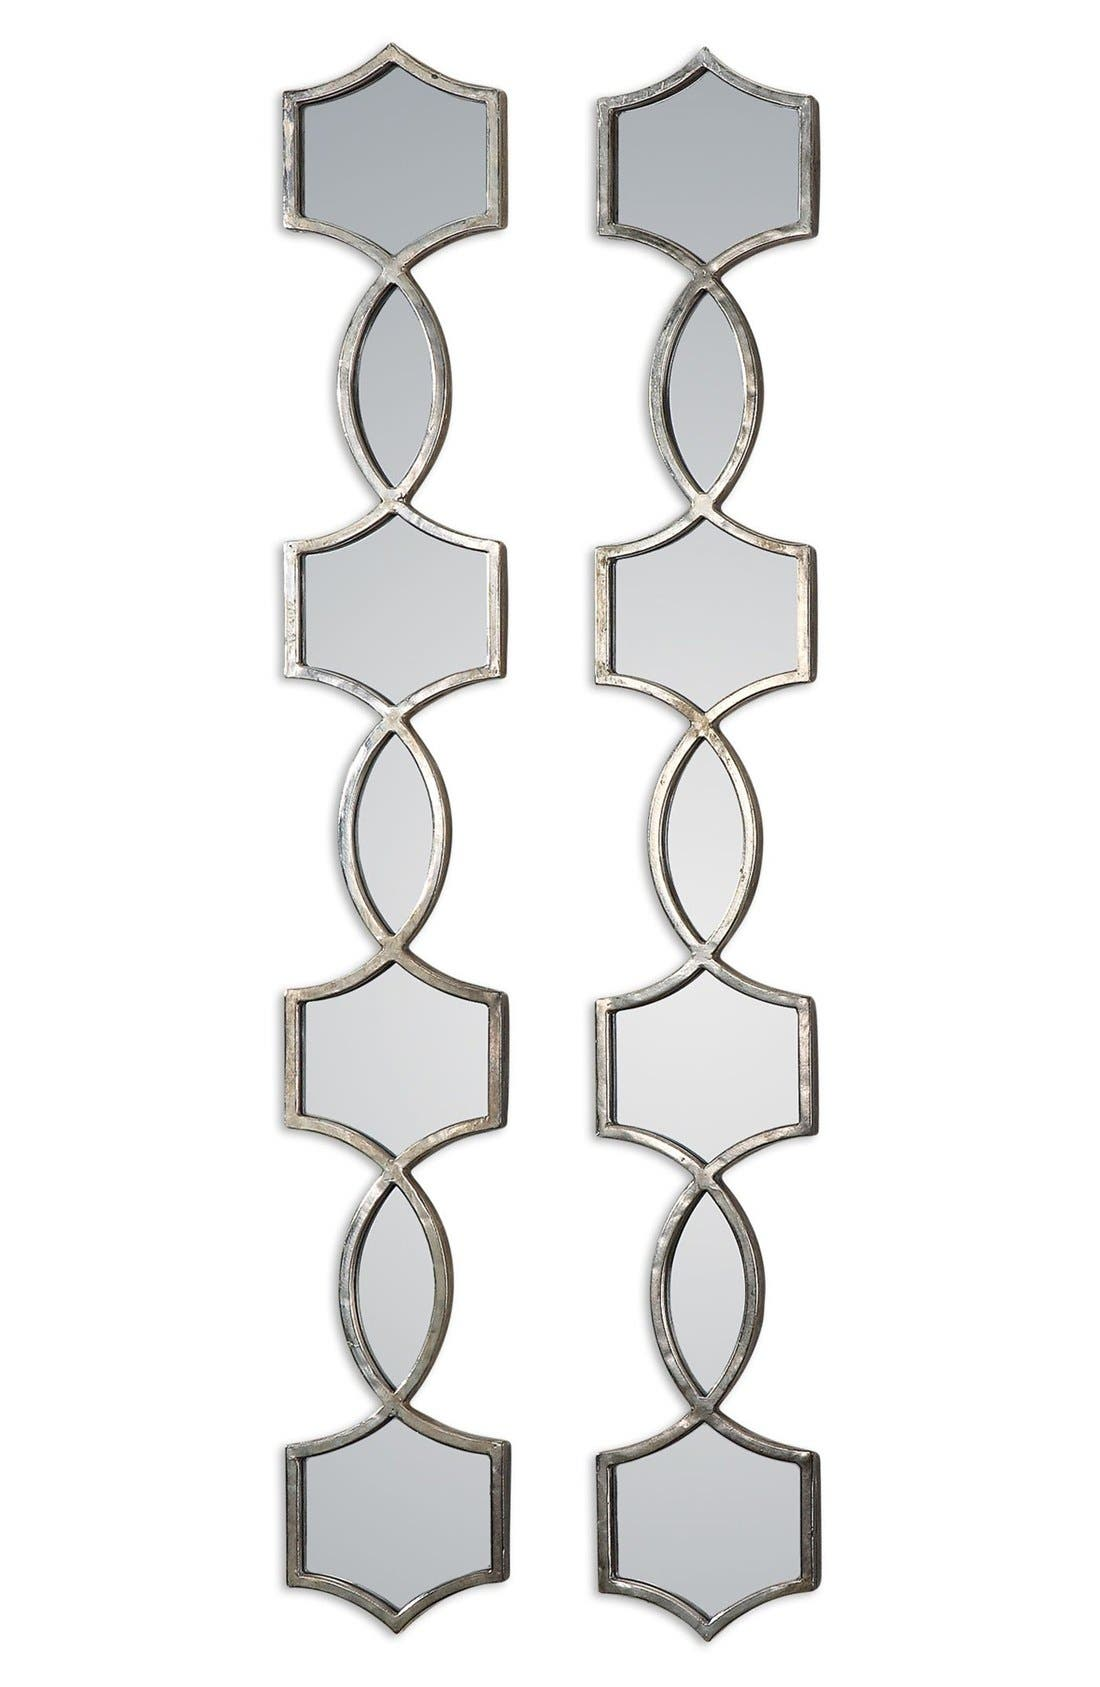 Alternate Image 1 Selected - Uttermost 'Vizela' Metal Wall Mirrors (Set of 2)